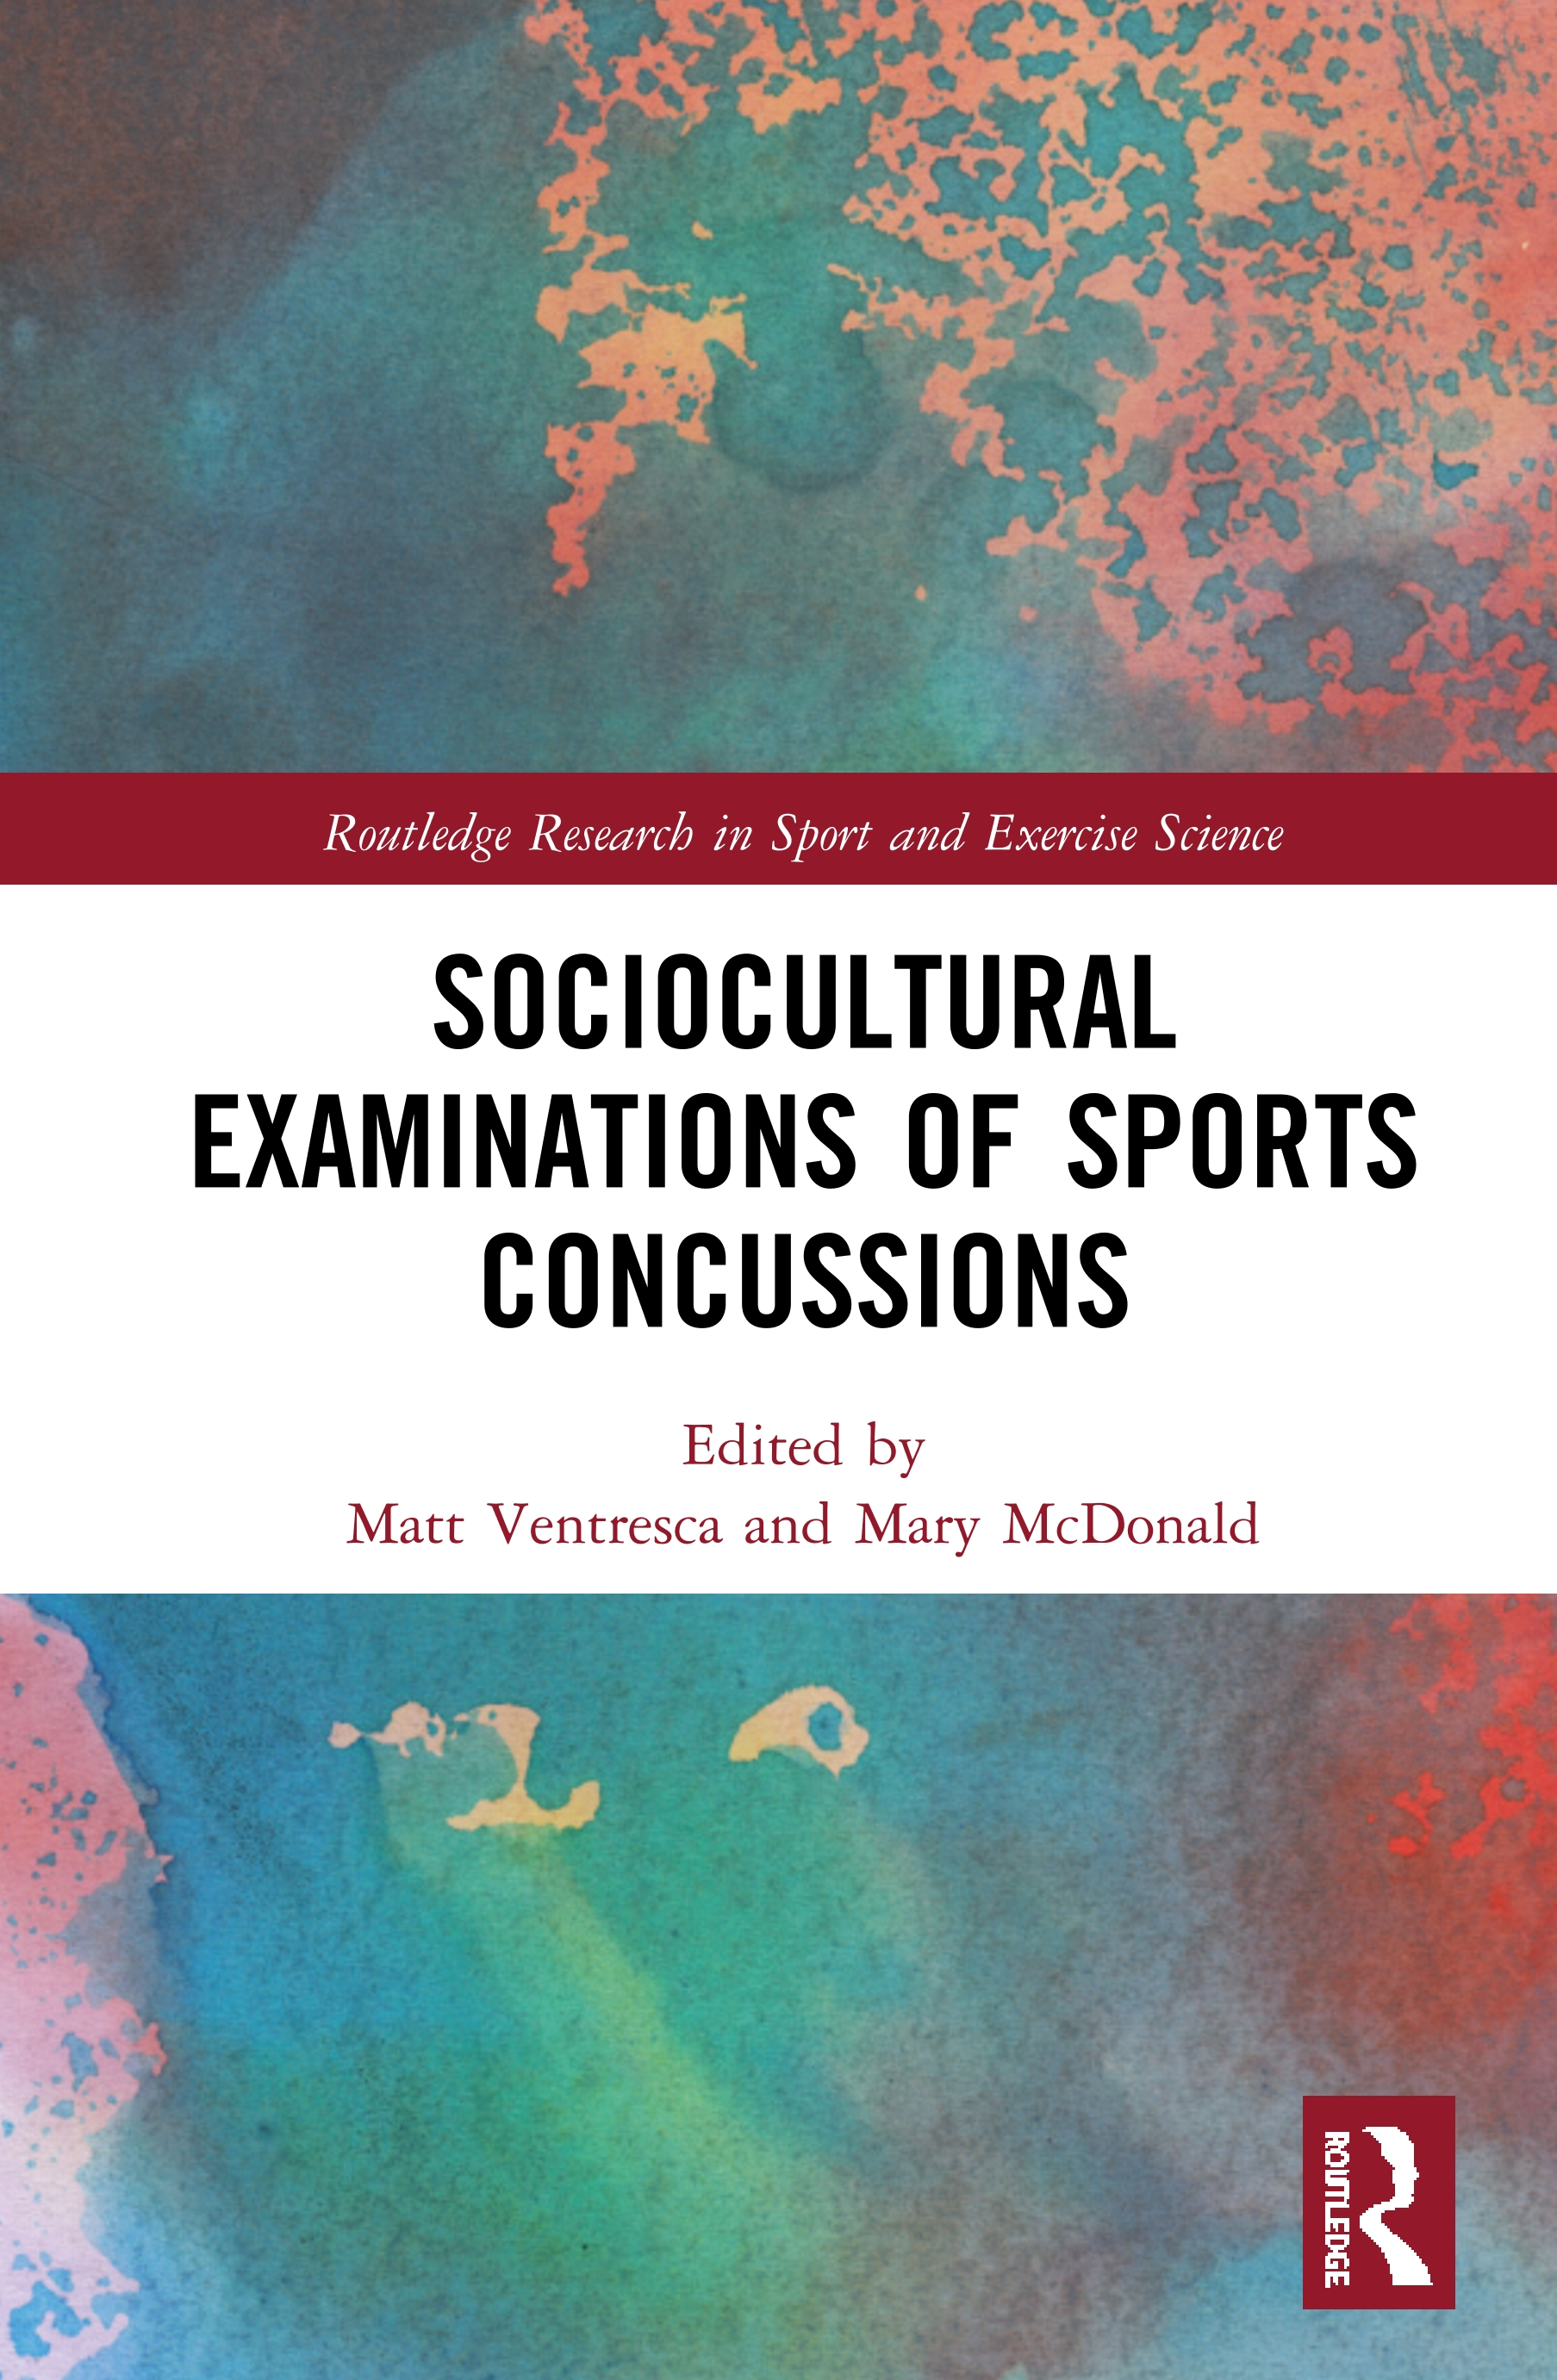 Sociocultural Examinations of Sports Concussions book cover